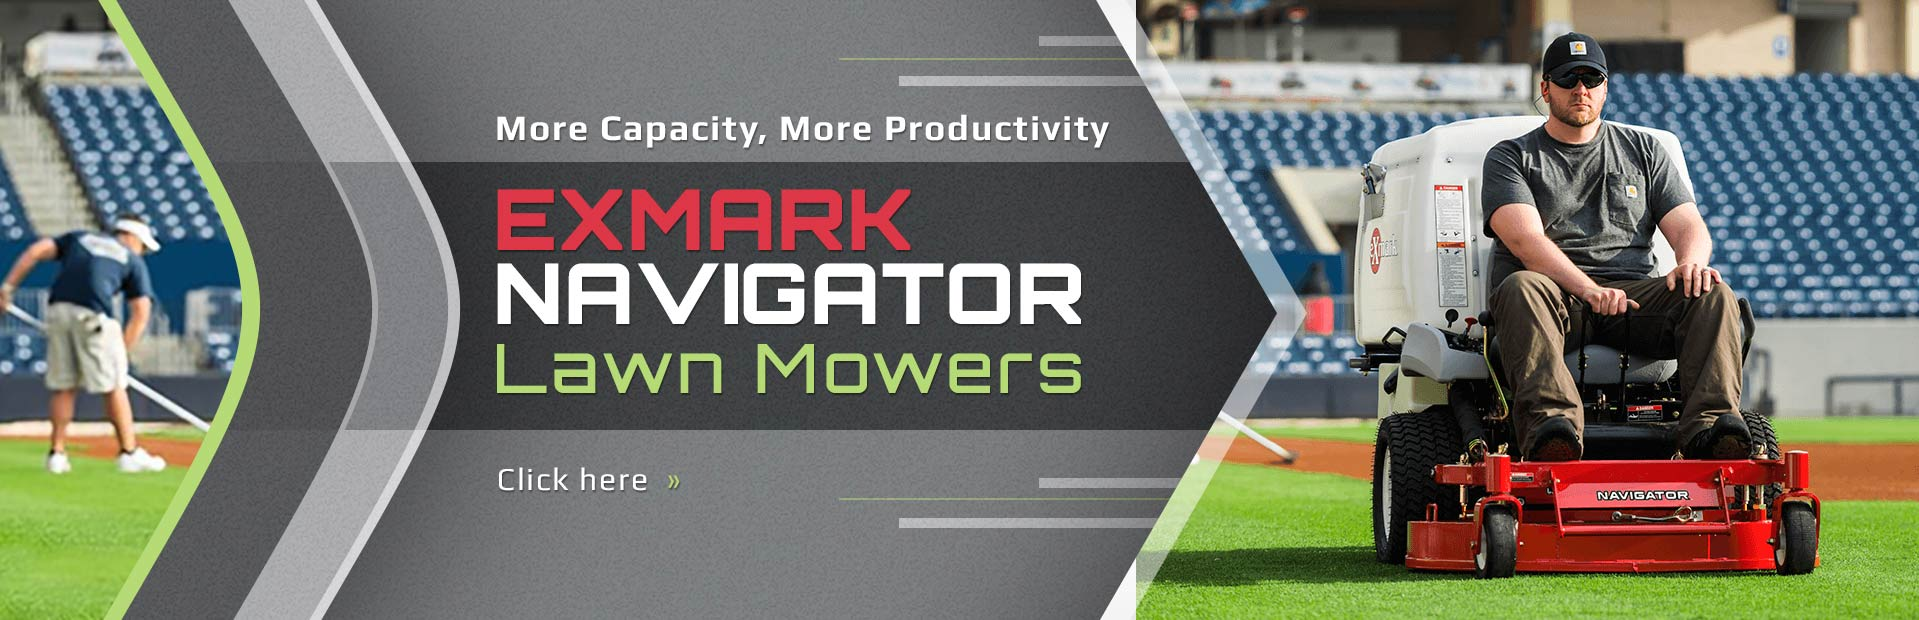 Click here to view our selection of Exmark Navigator lawn mowers!